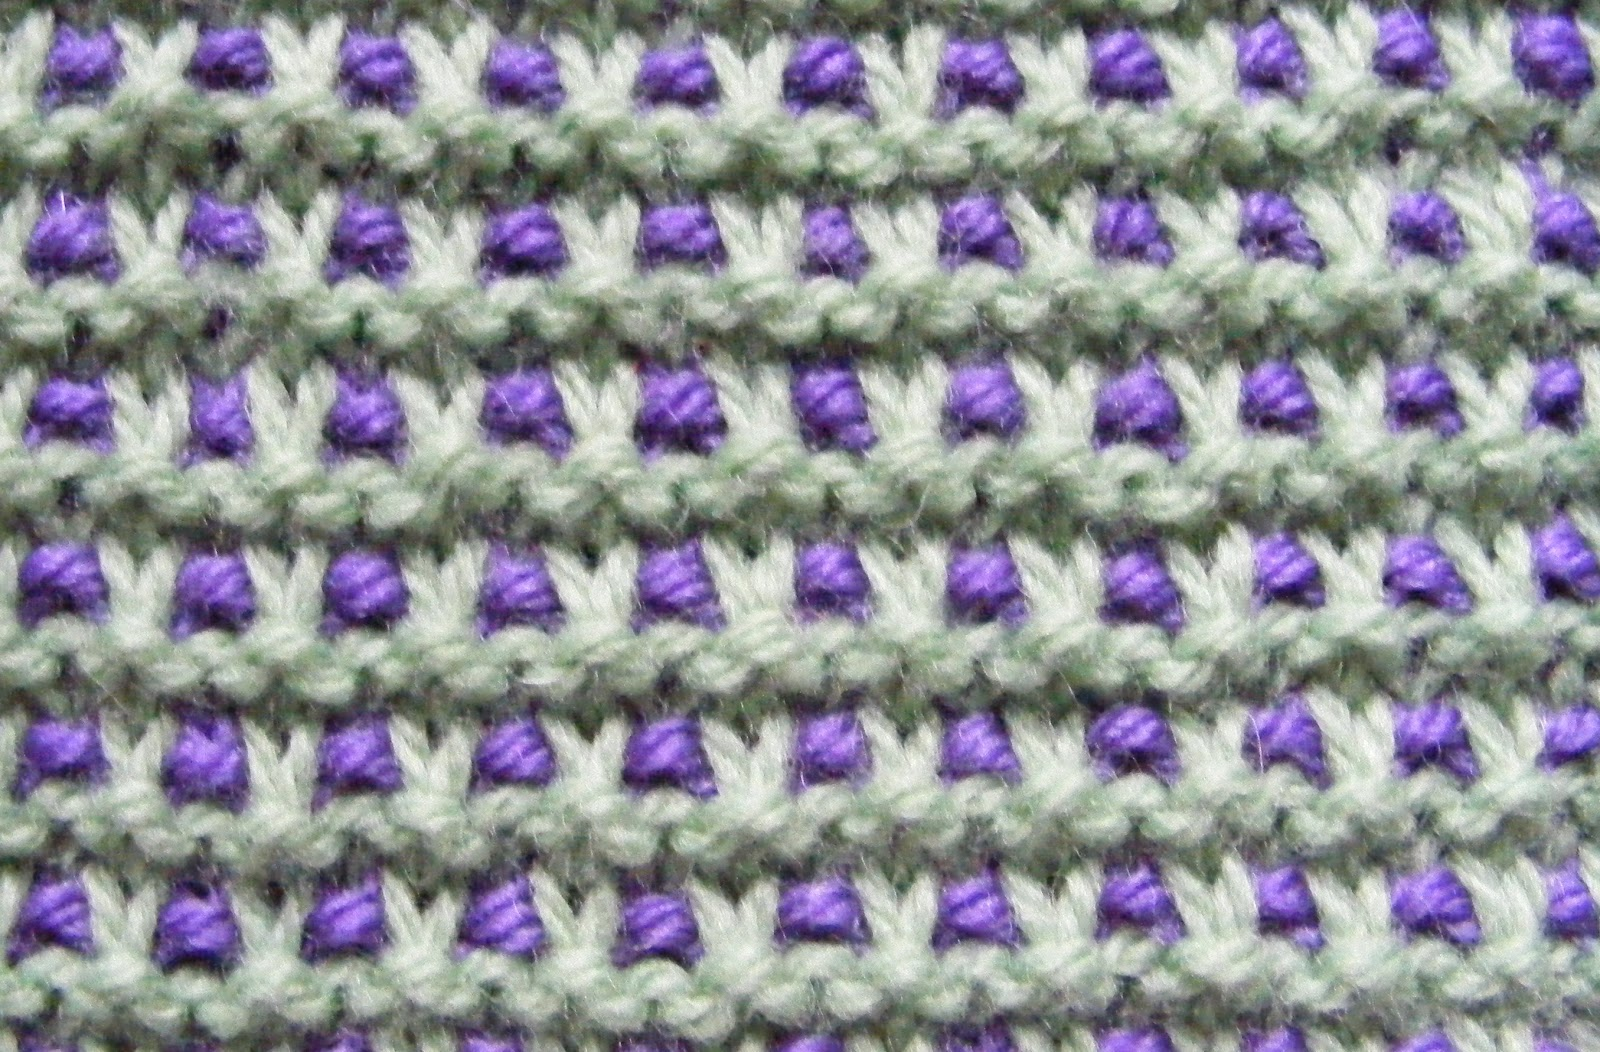 Chalk Cottage Knitting: Variation on Garter Slip Stitch